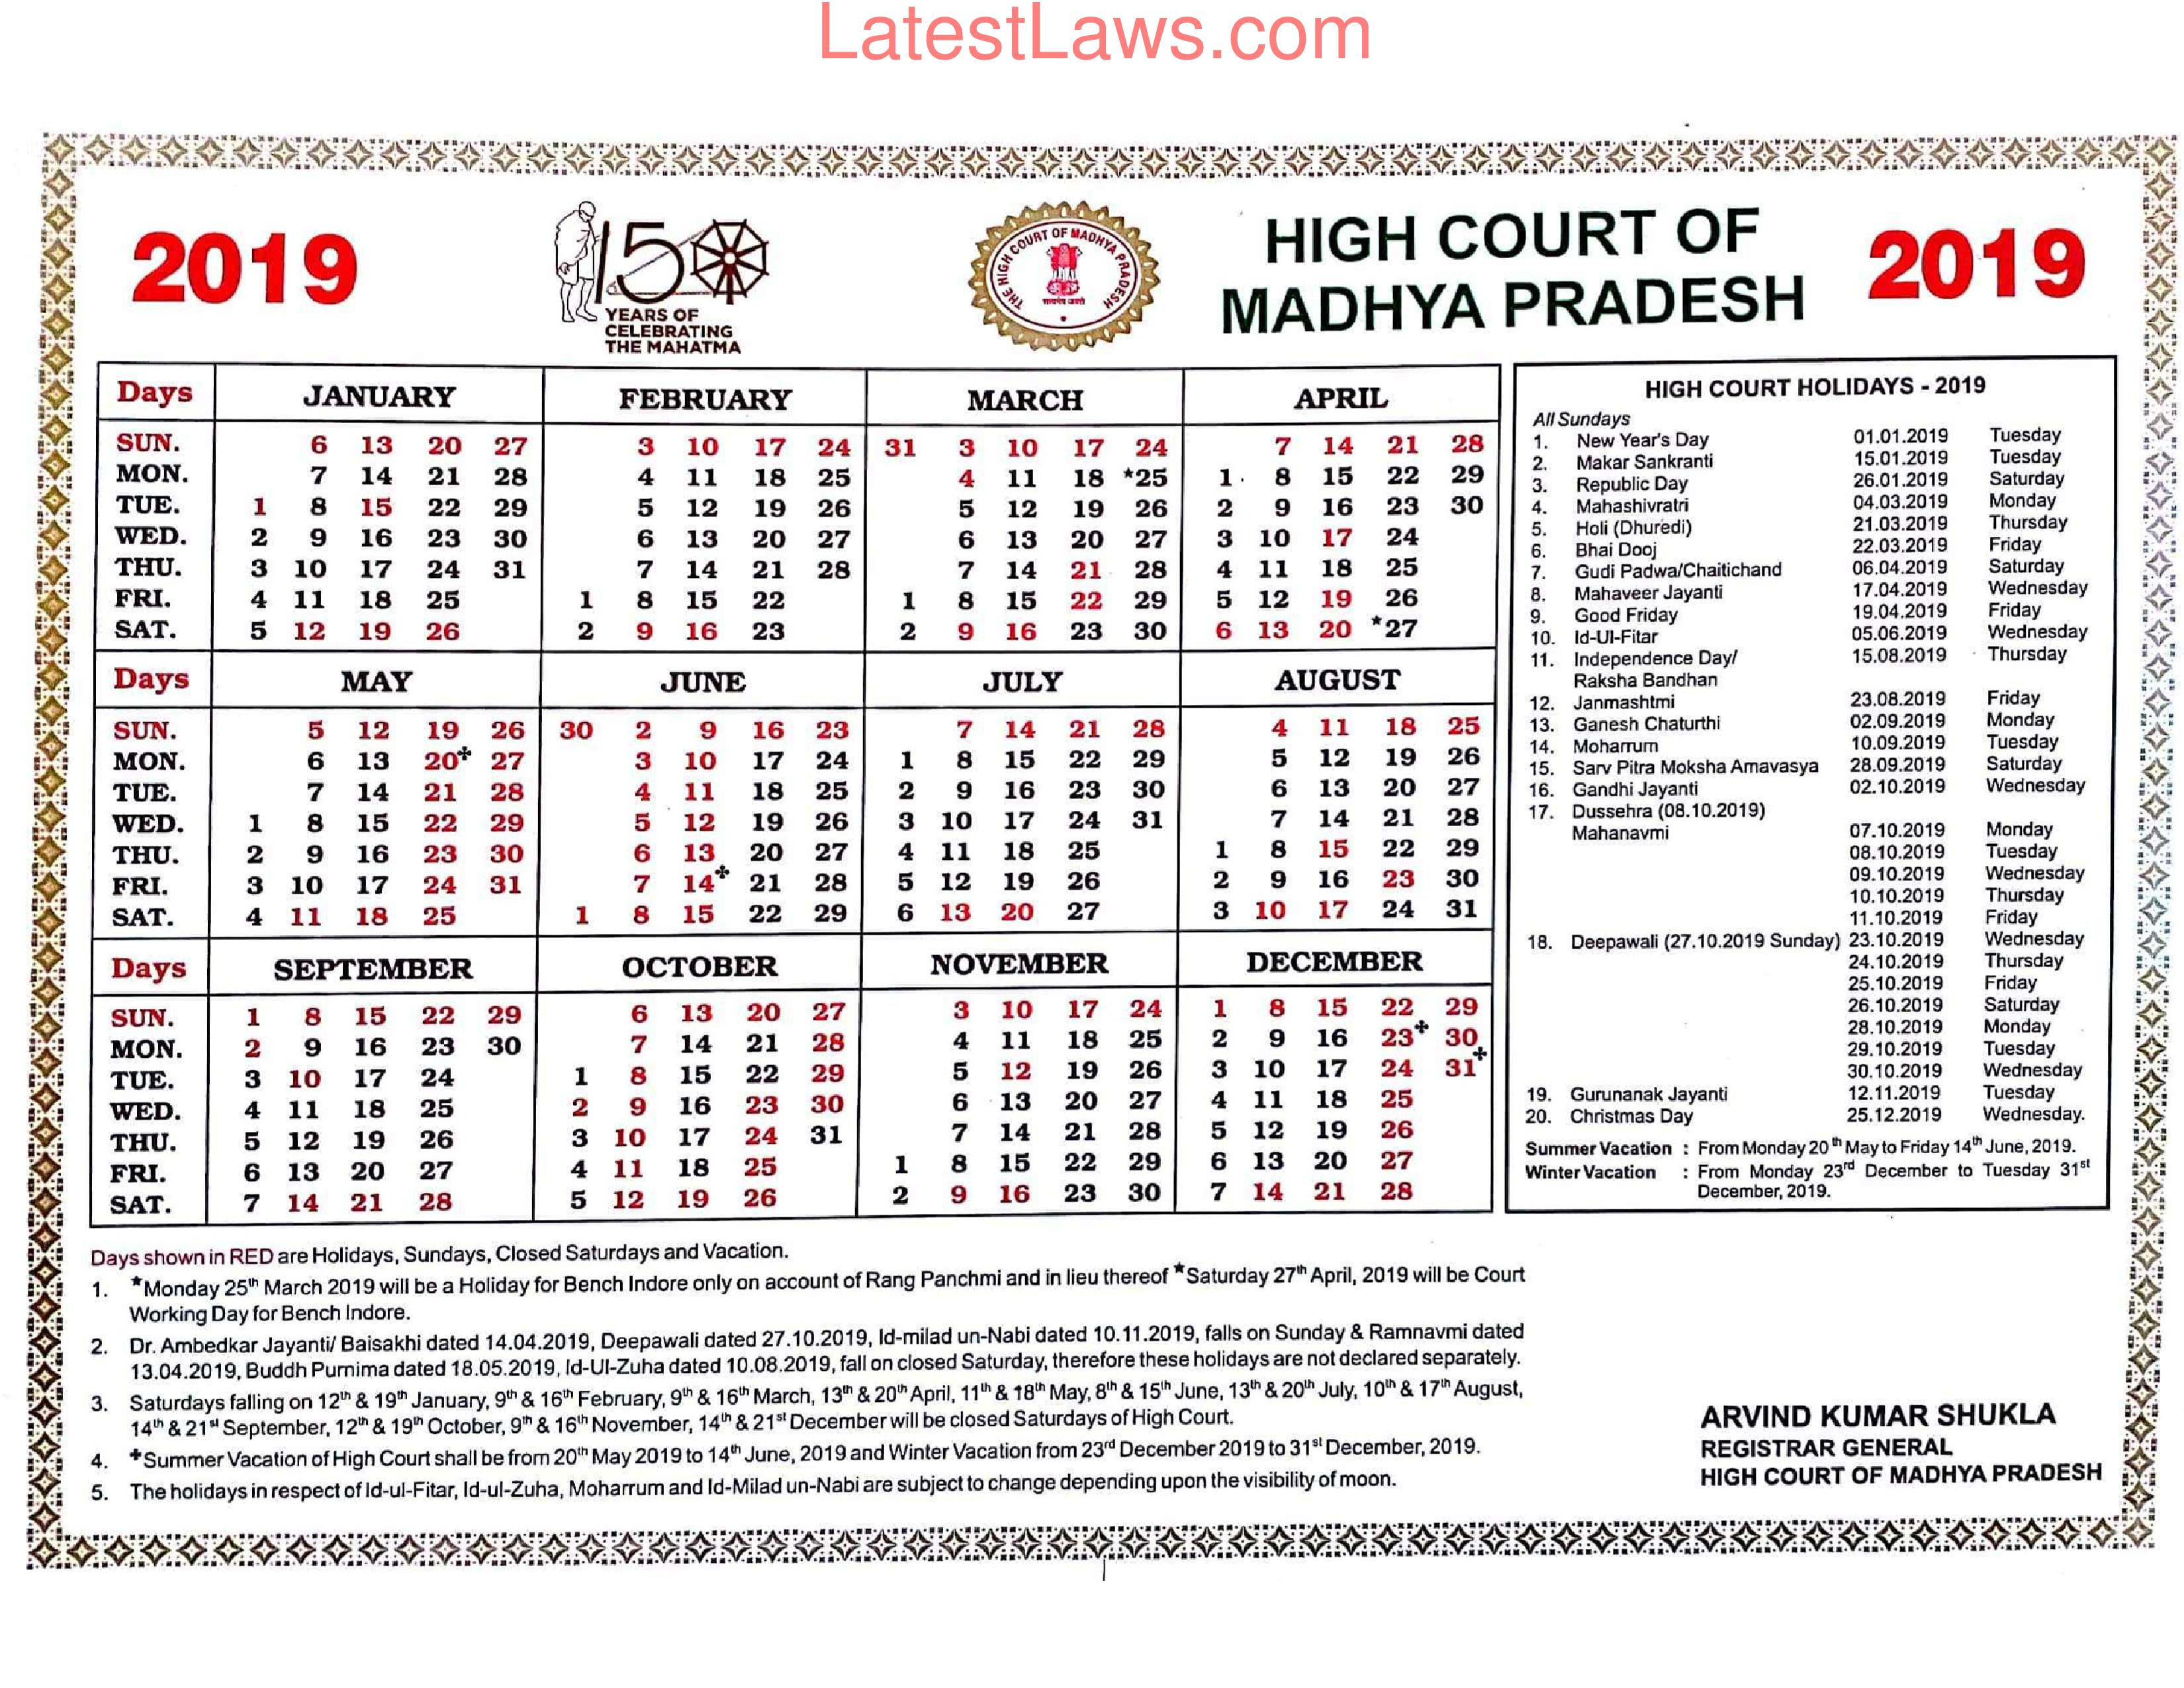 Madhya Pradesh High Court Calendar 2019 intended for Bihar Govt Calendar